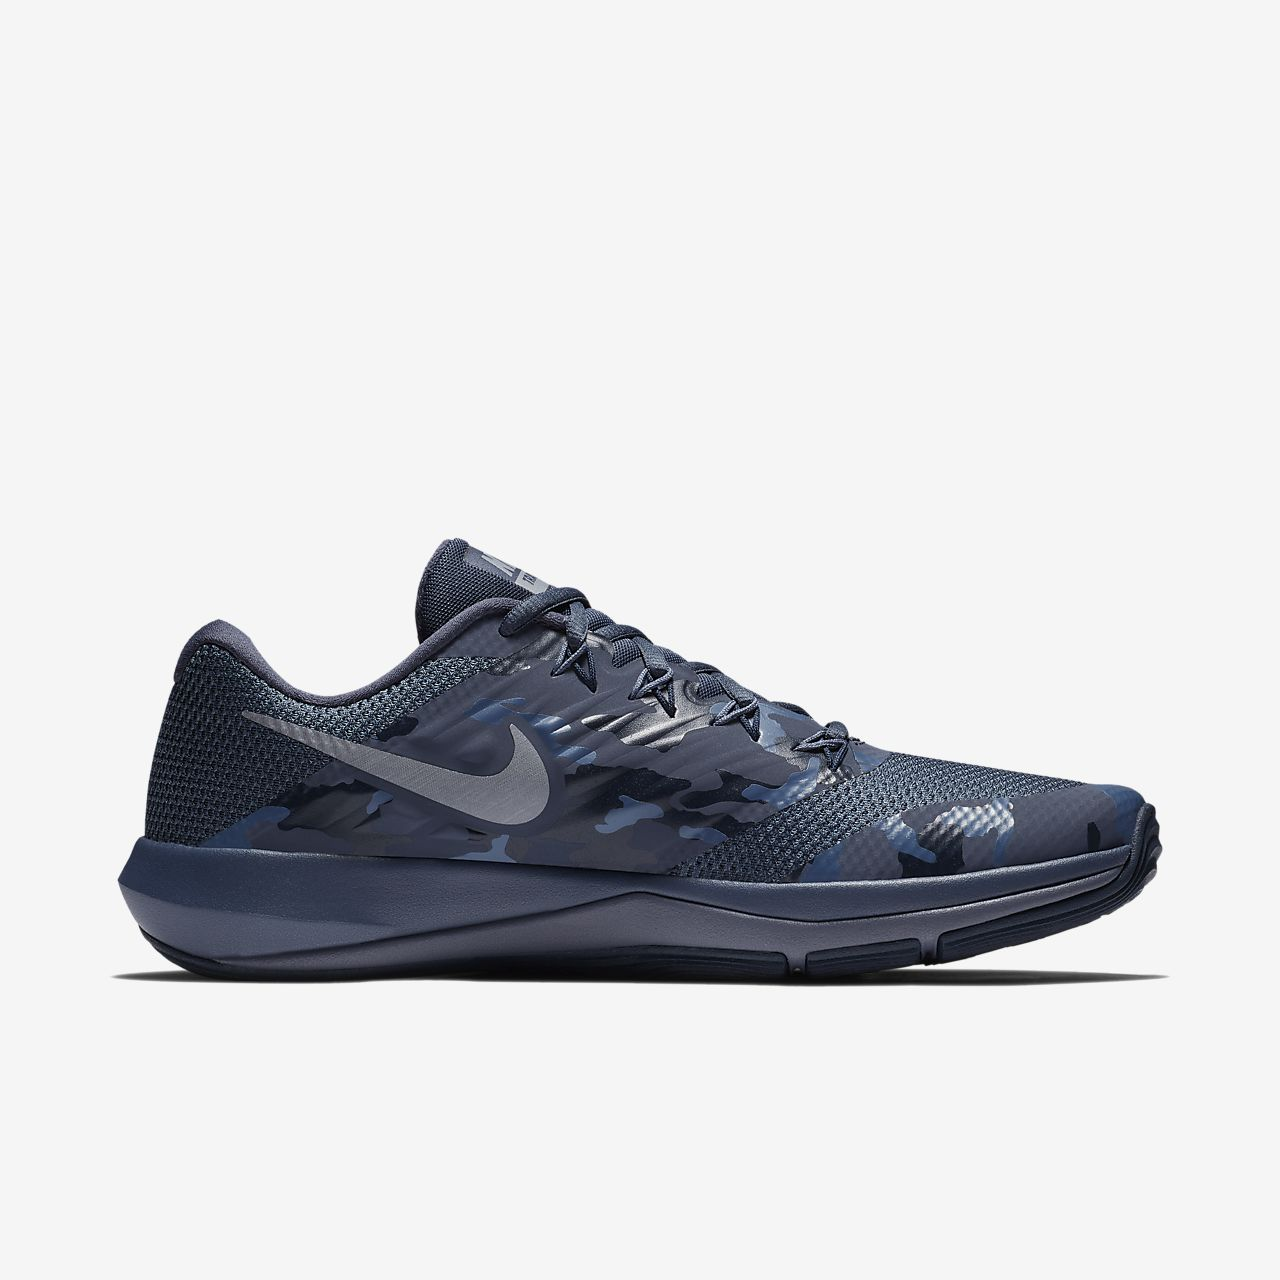 Mens Lunar Prime Iron Ii Fitness Shoes Nike mhazLK